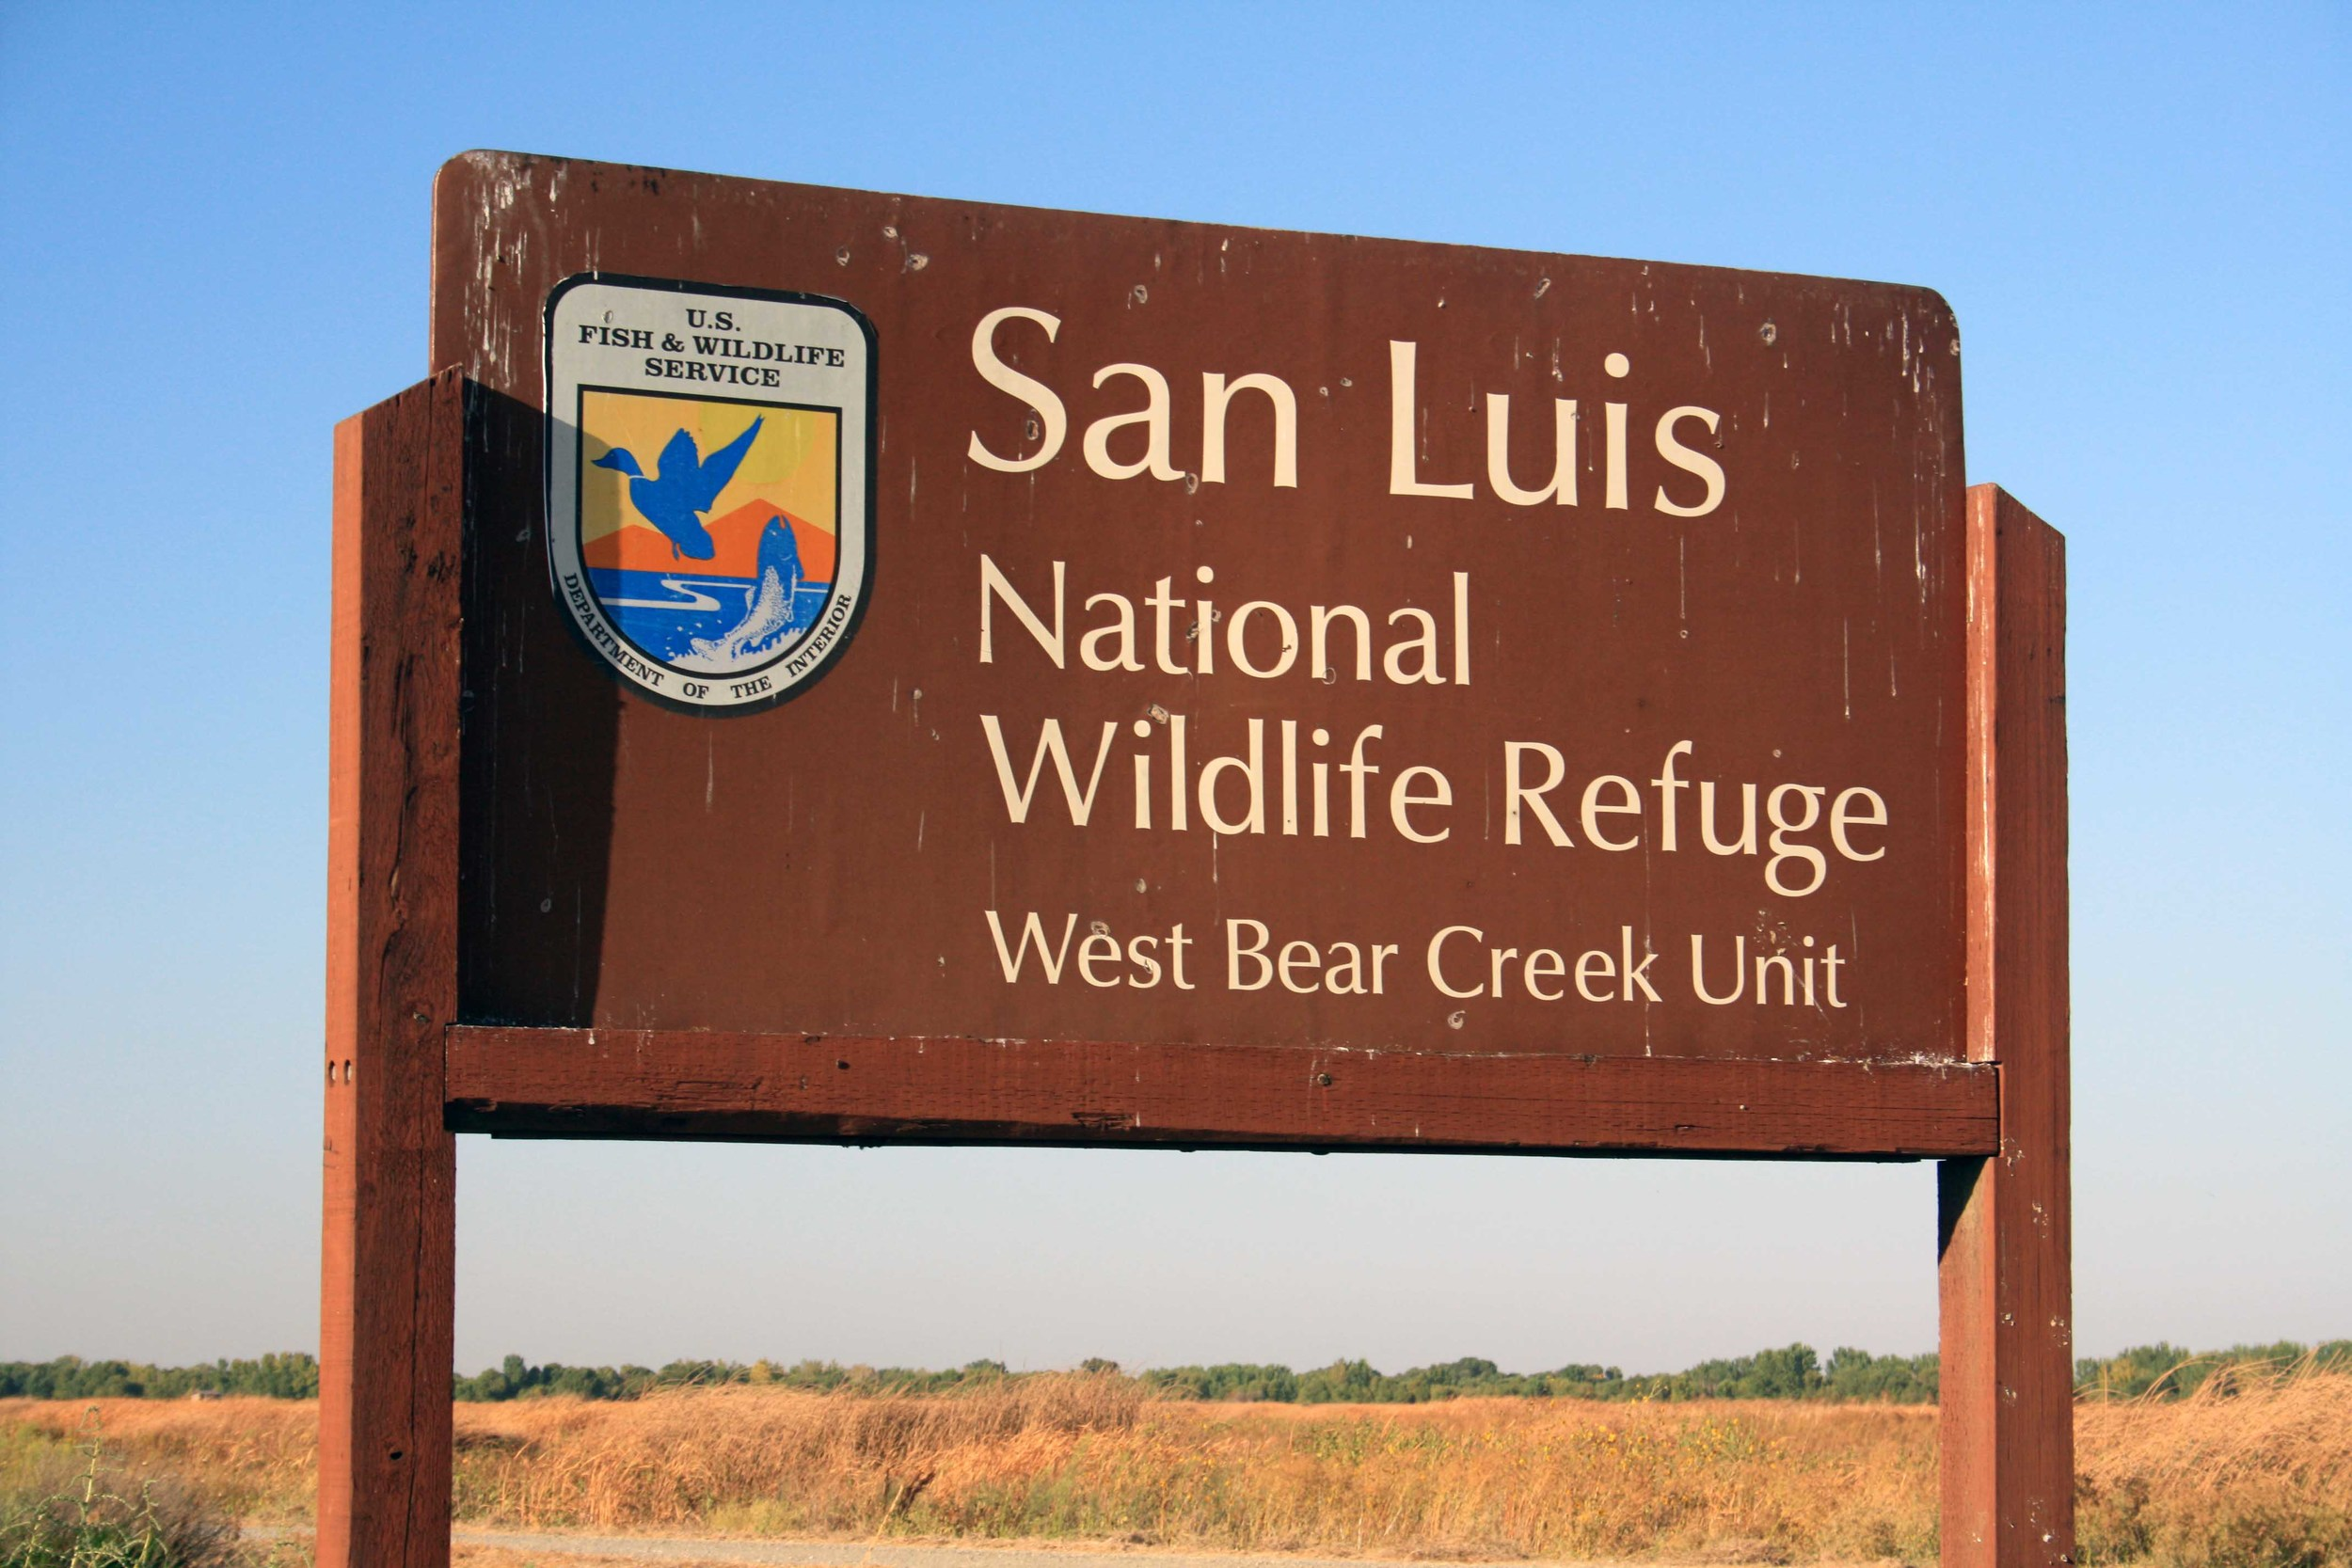 San Luis NWR -  PHOTO BY ADAM BLAUERT